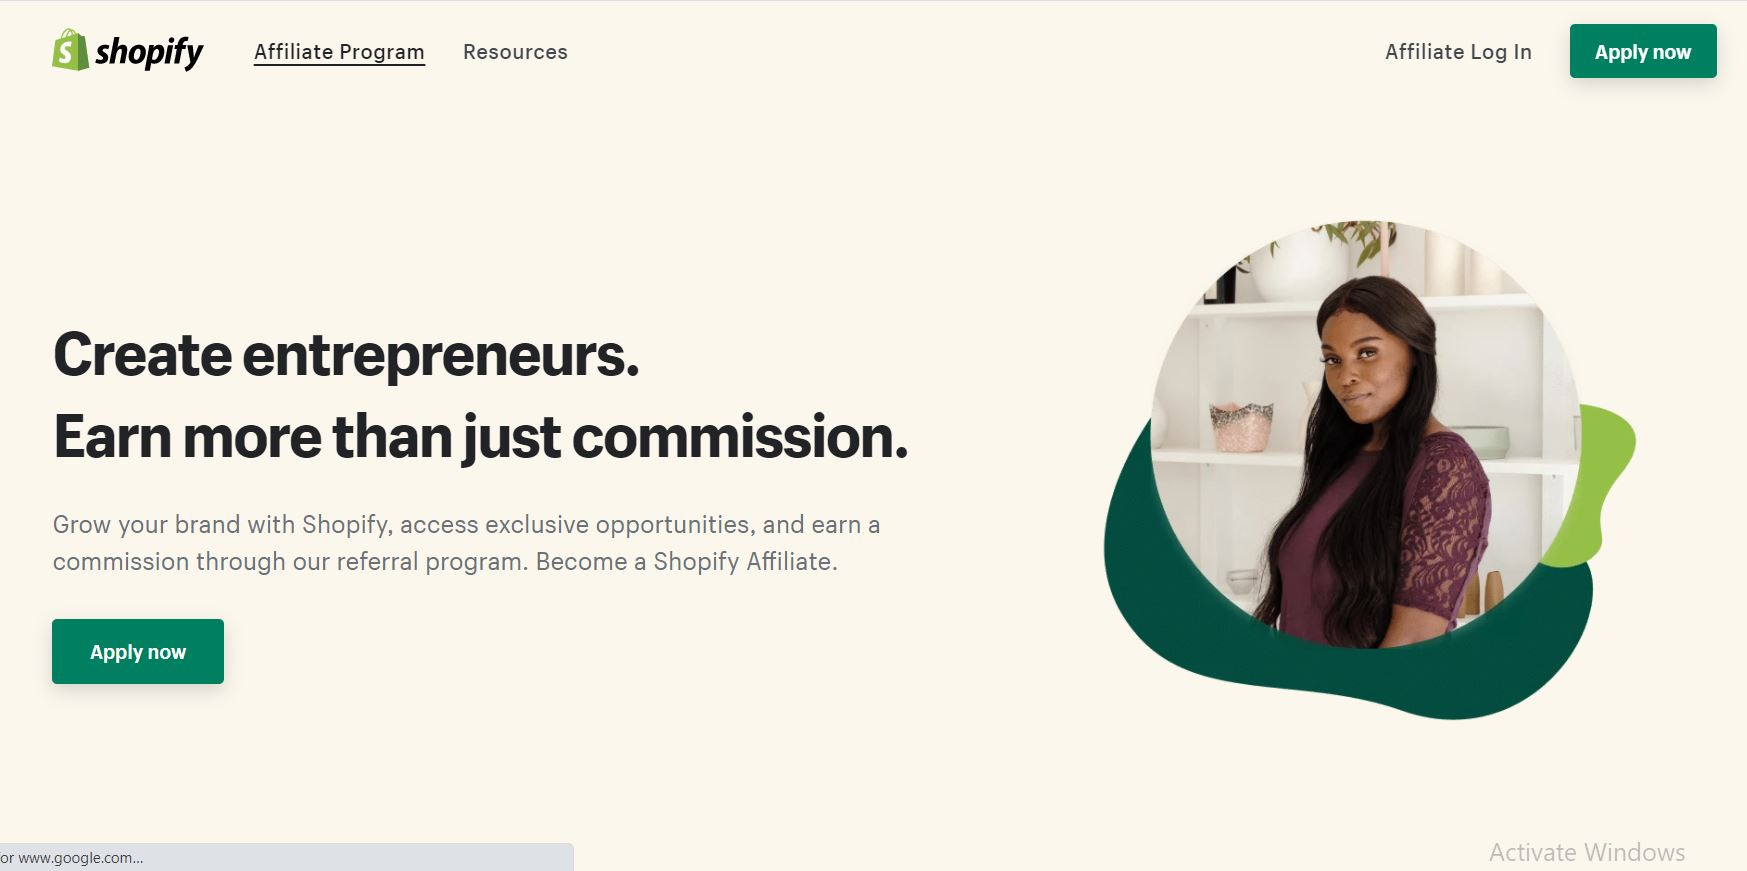 Get Started with Shopify Affiliate Program